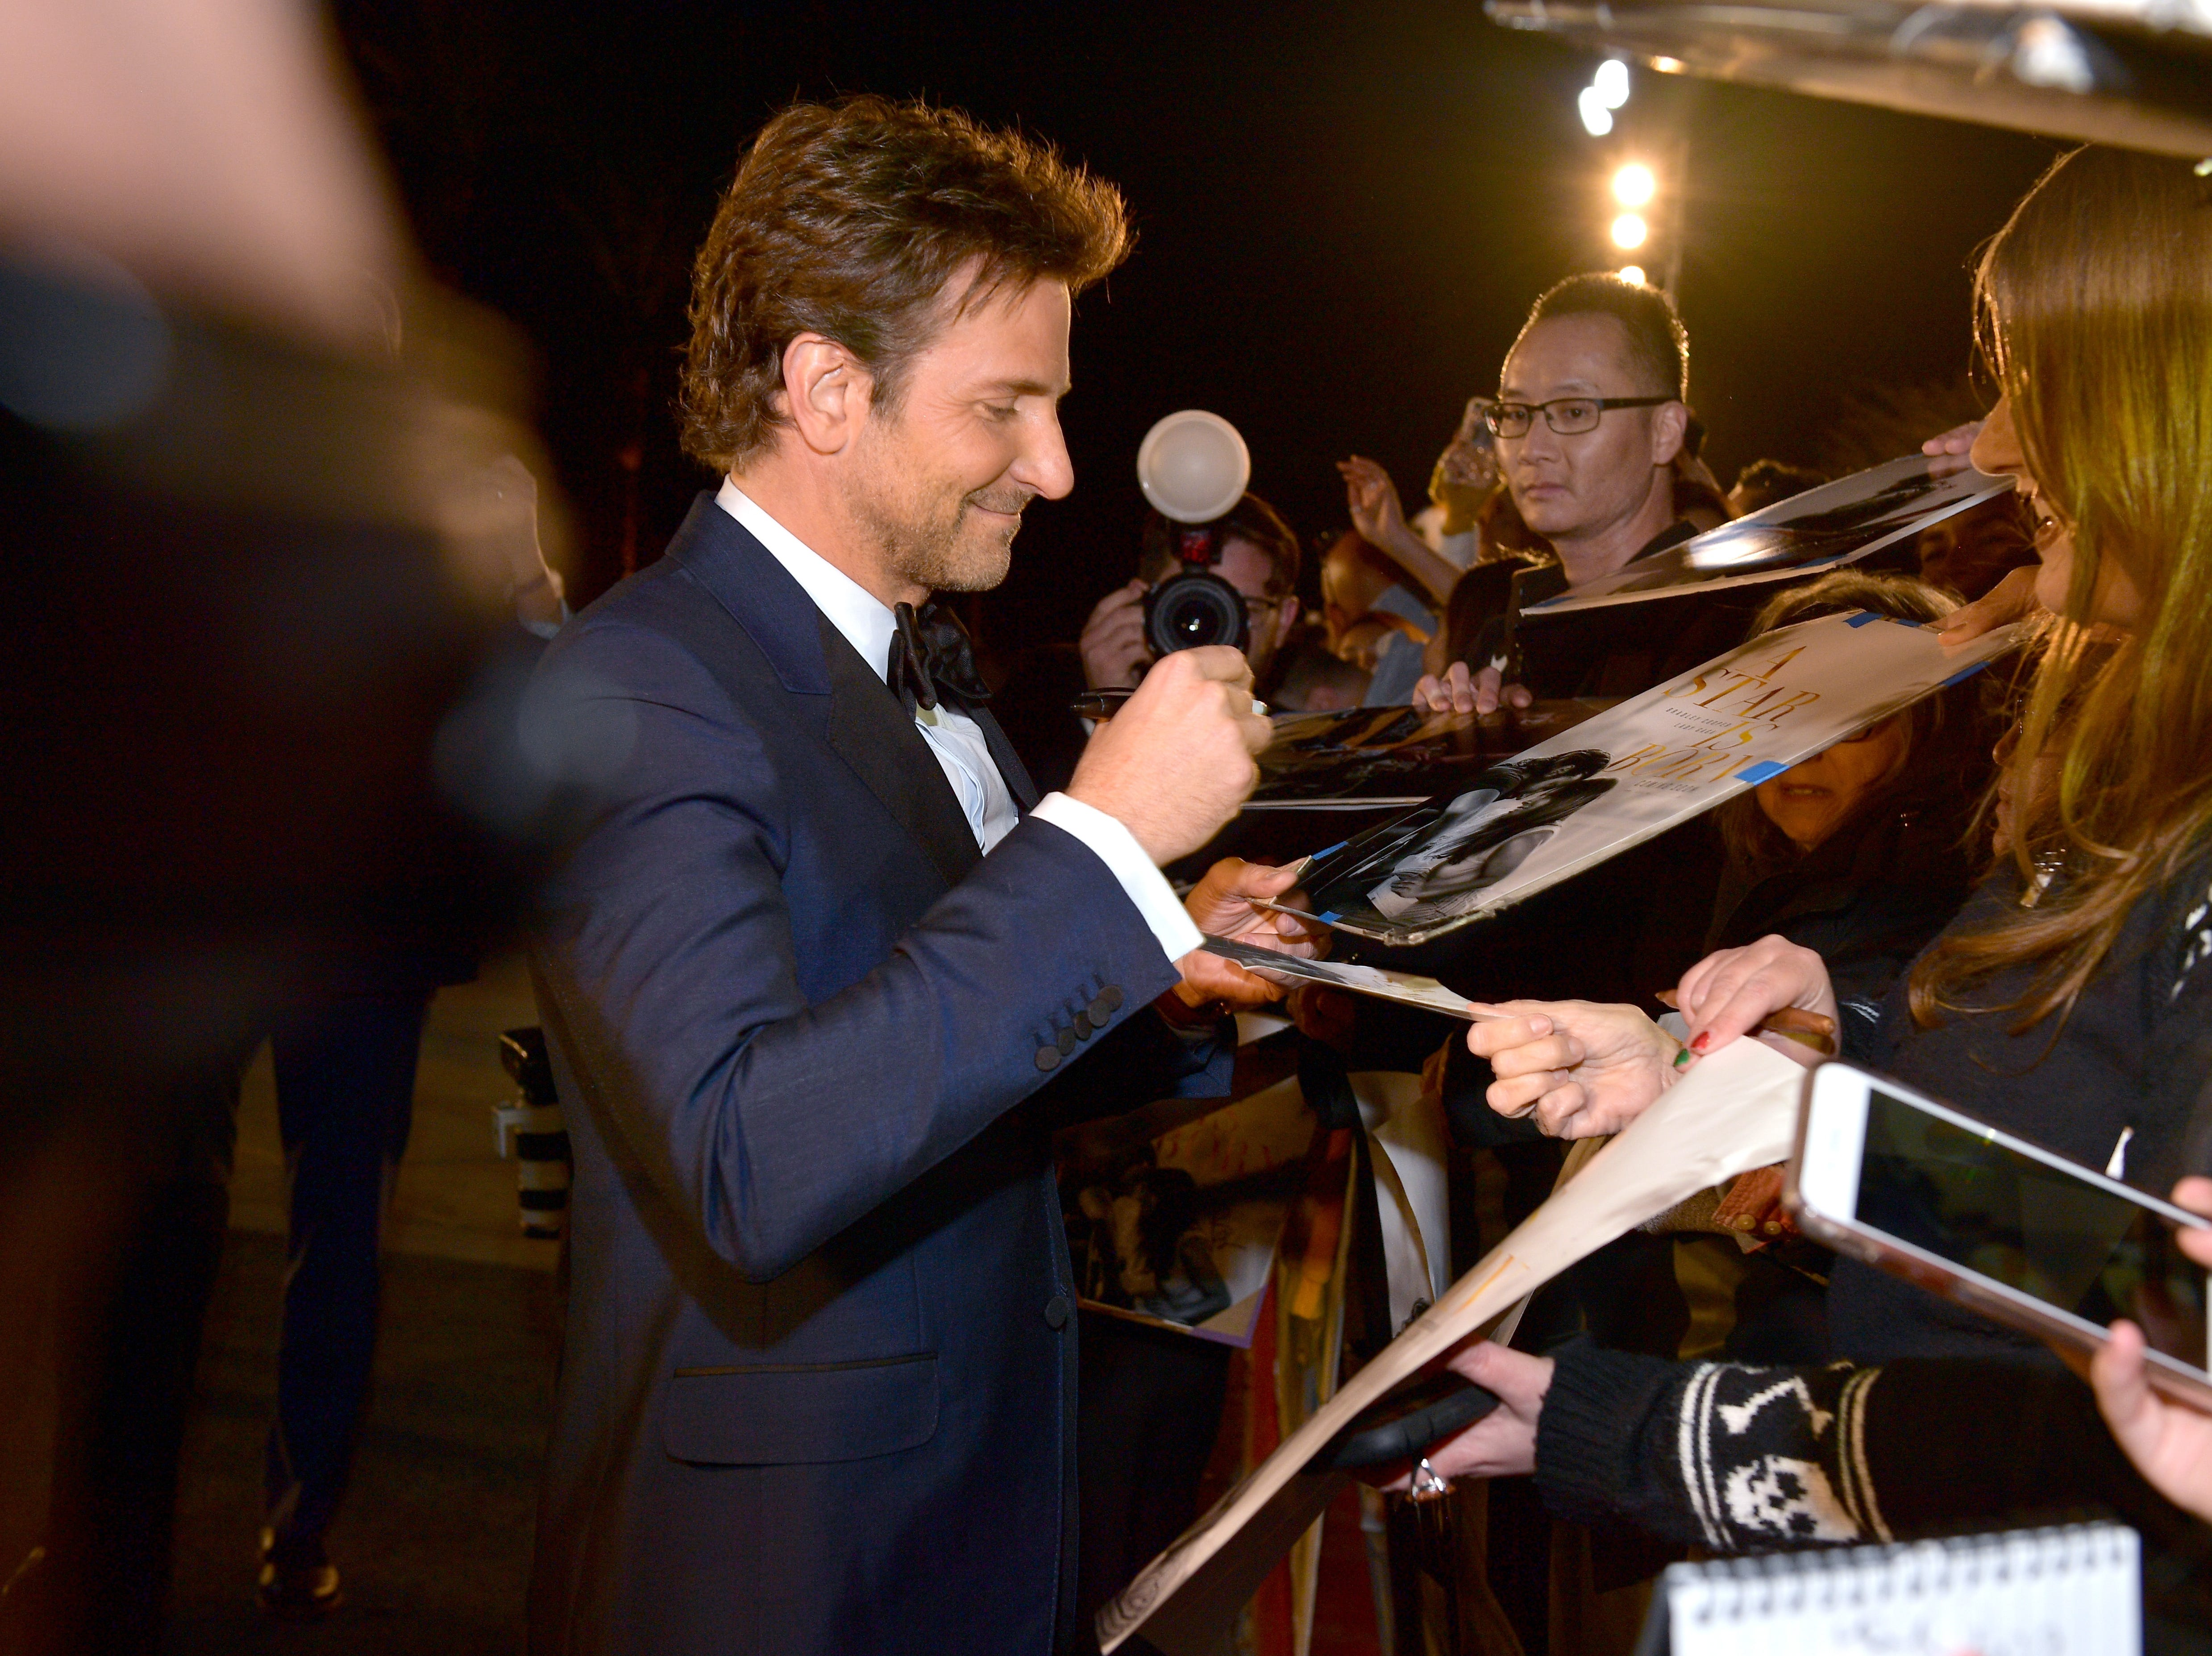 PALM SPRINGS, CA - JANUARY 03:  Bradley Cooper attends the 30th Annual Palm Springs International Film Festival Film Awards Gala at Palm Springs Convention Center on January 3, 2019 in Palm Springs, California.  (Photo by Matt Winkelmeyer/Getty Images for Palm Springs International Film Festival ) ORG XMIT: 775276719 ORIG FILE ID: 1076925552